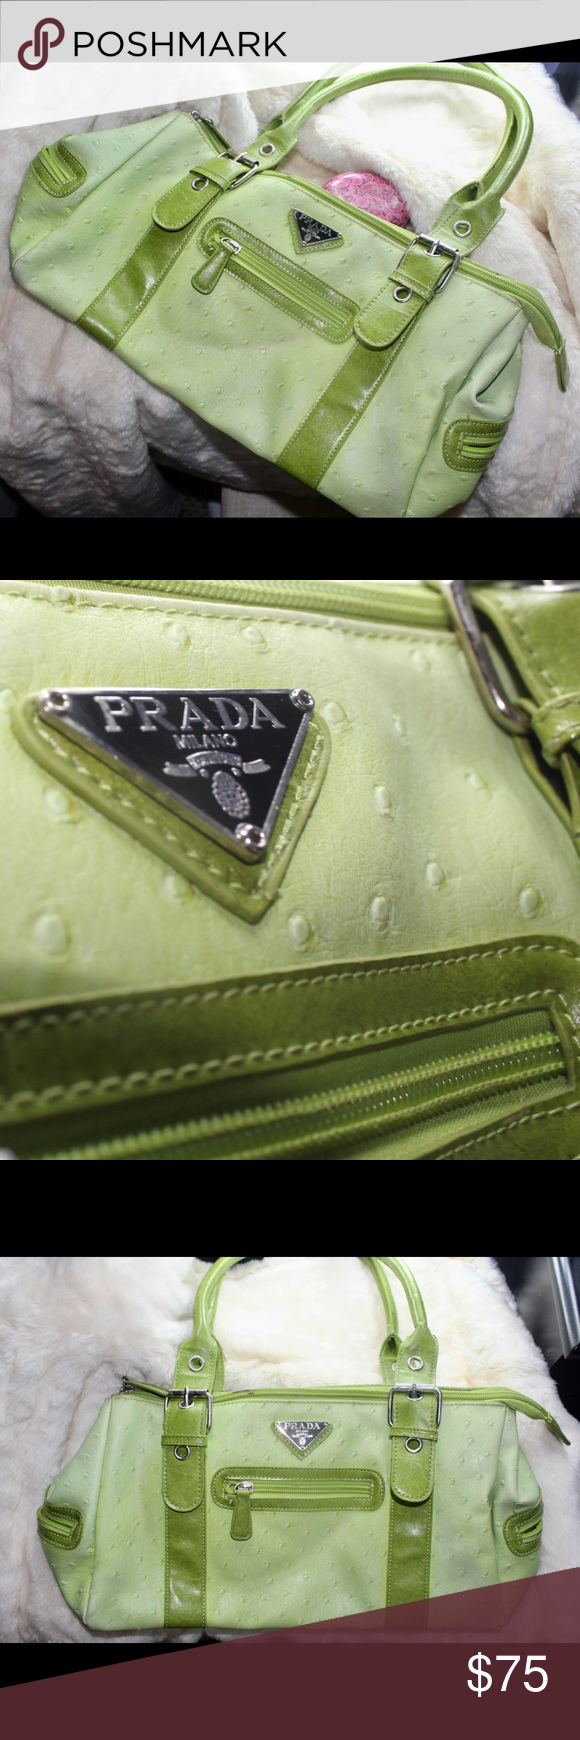 1ecdd973800c Prada Purse Vintage lime green Prada purse Prada Bags | My Posh ...